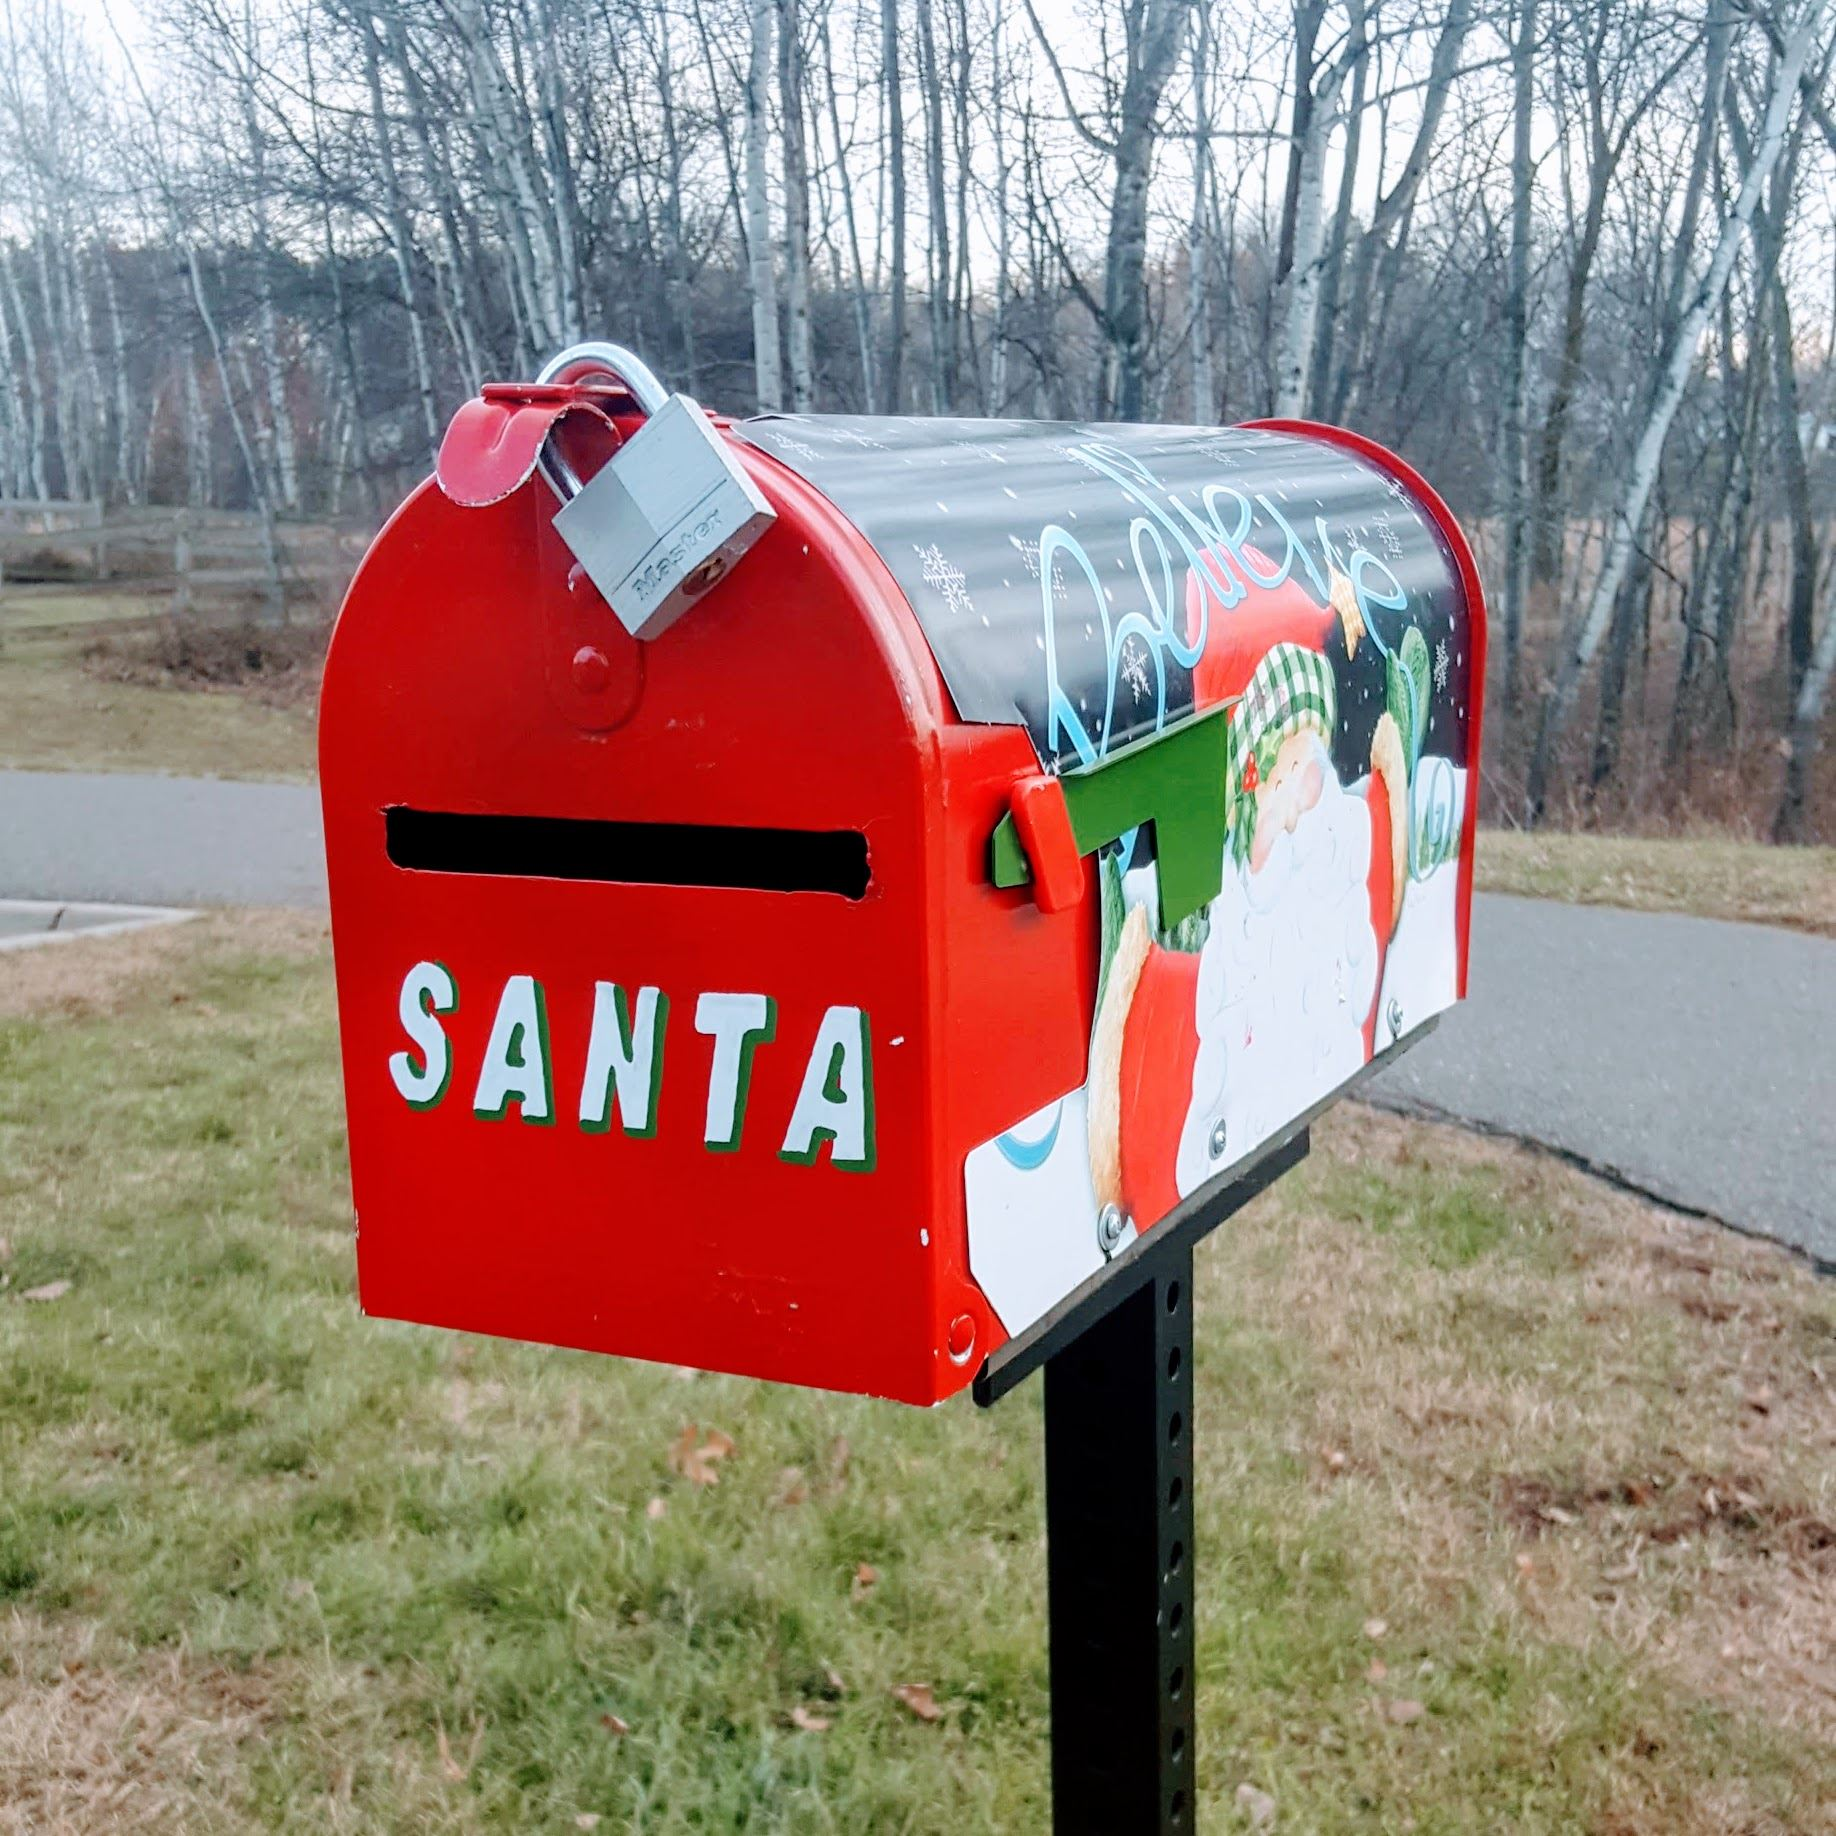 Bright red mailbox decorated with Santa's picture and name